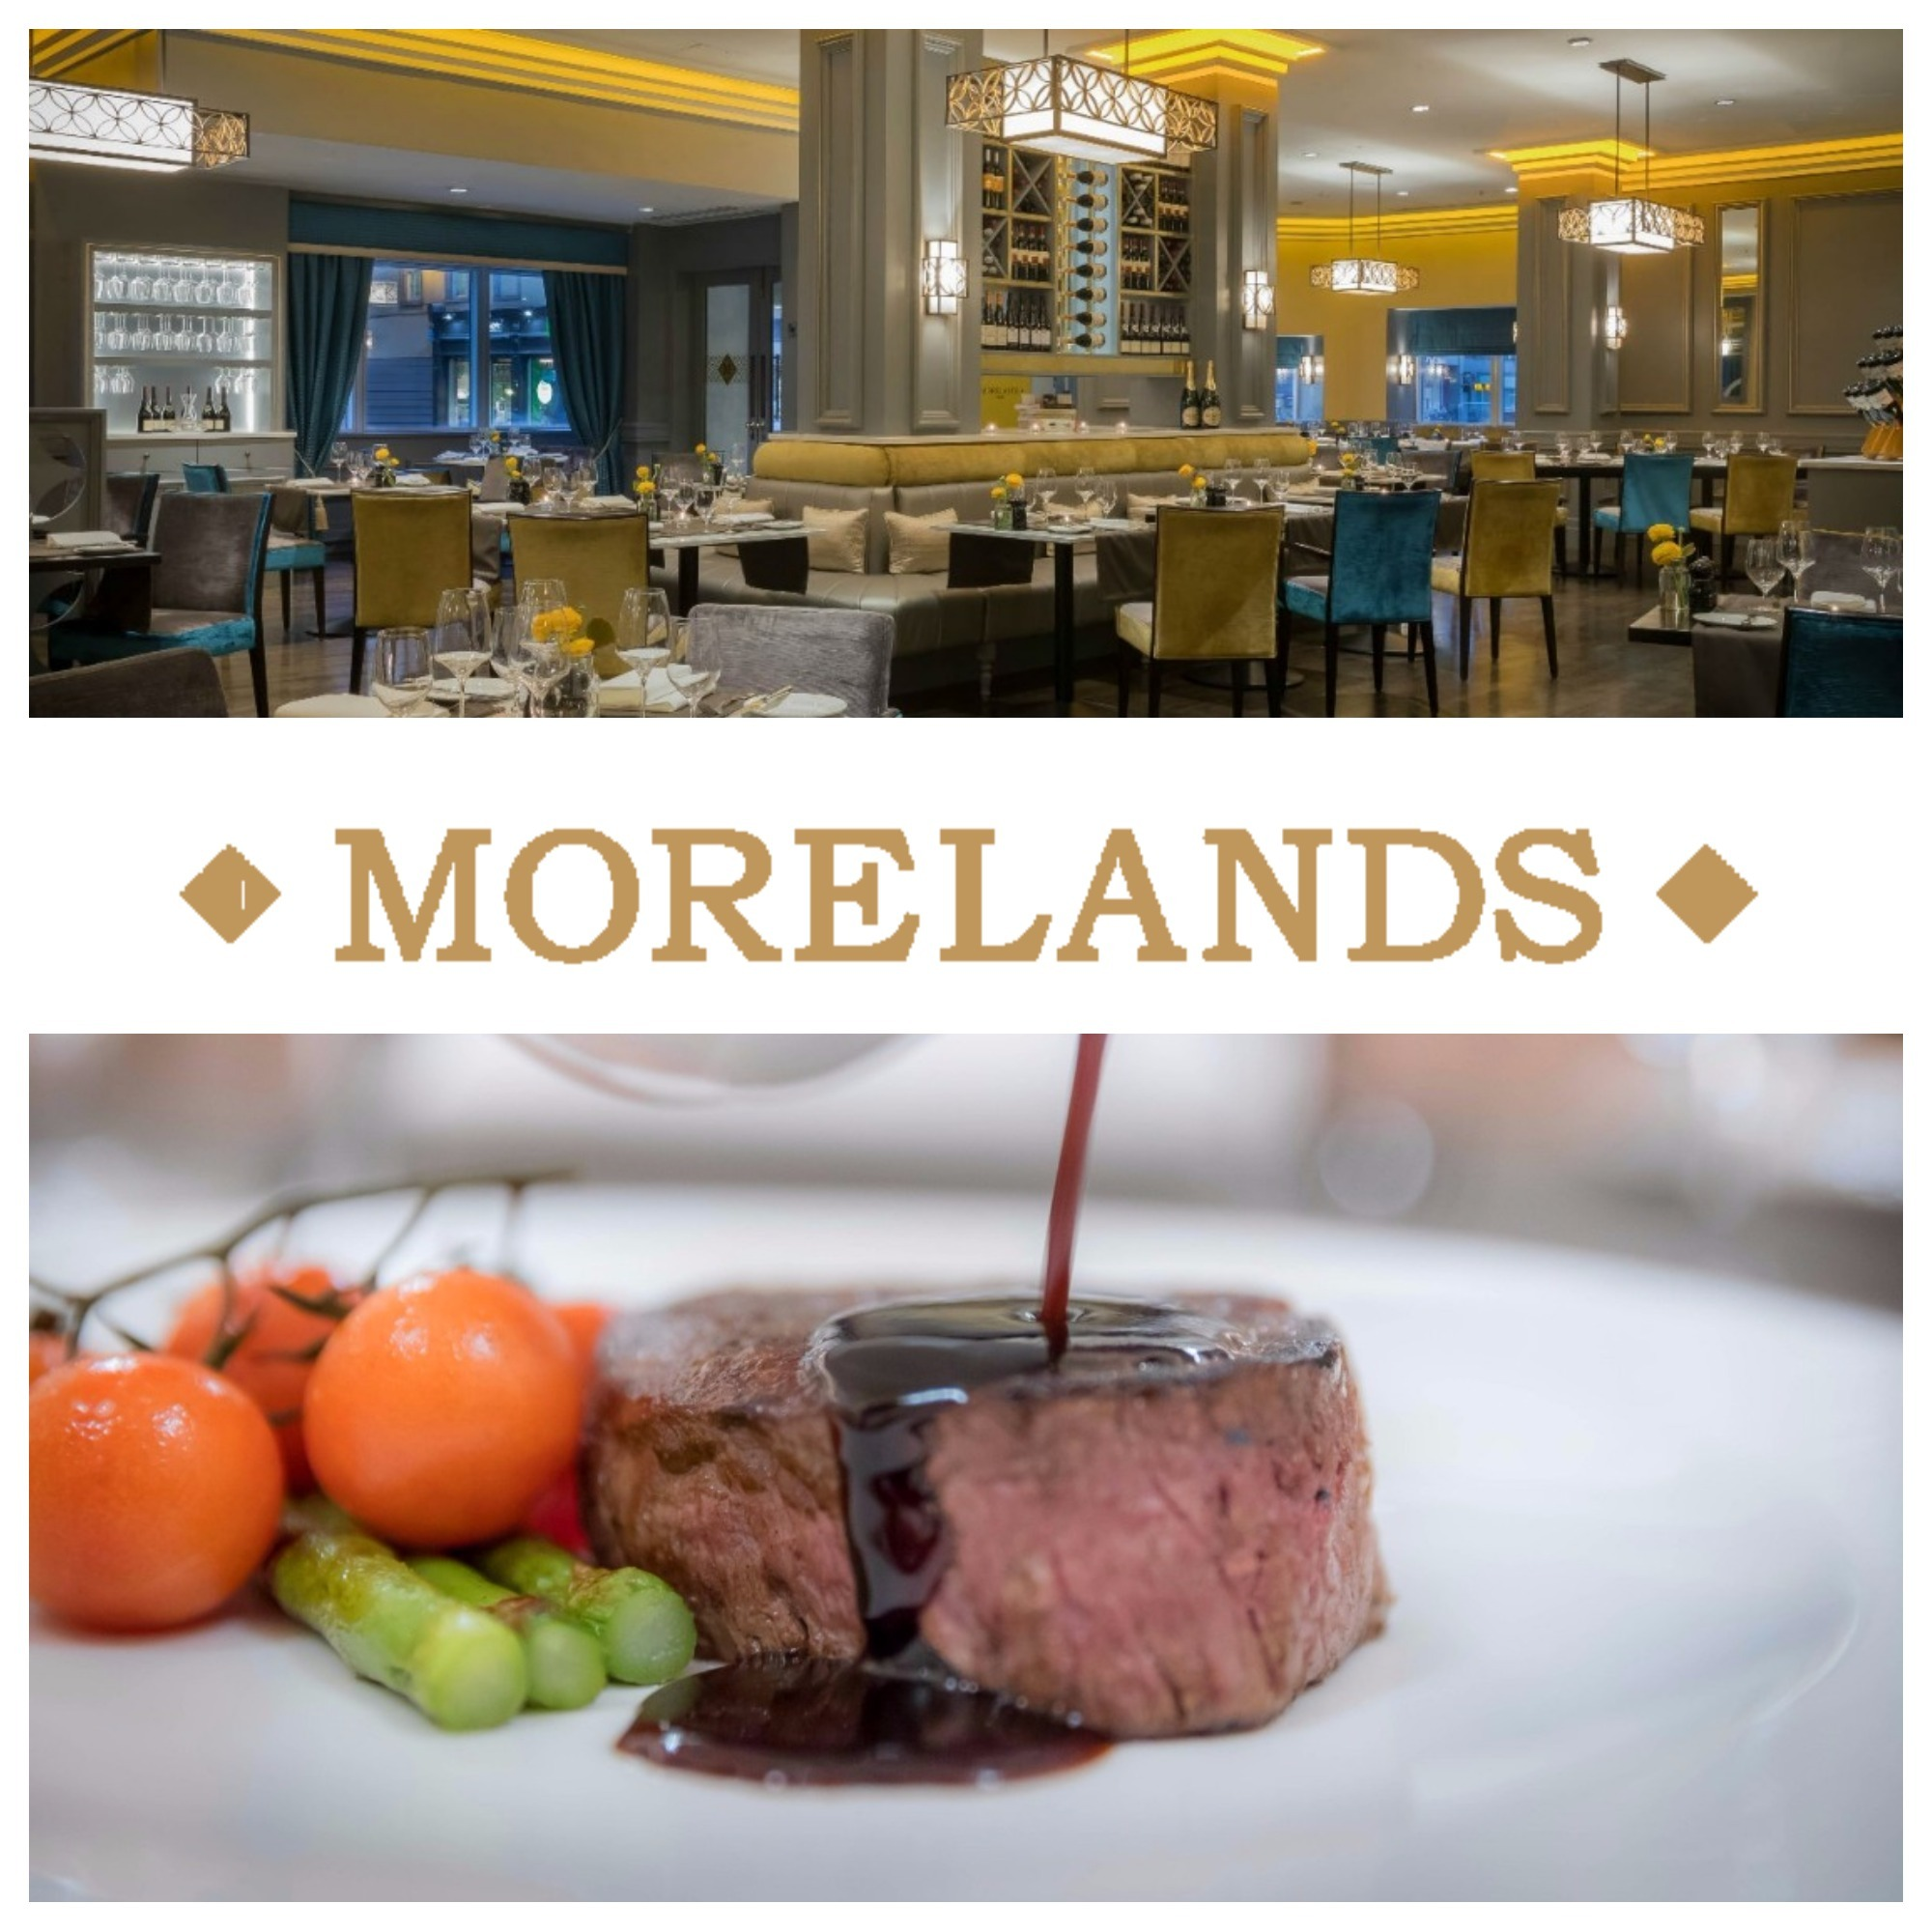 deal of the day-morelands grill-dublin-west moreland street-grill-bistro-steak house-meal for two-deal-of-the-day